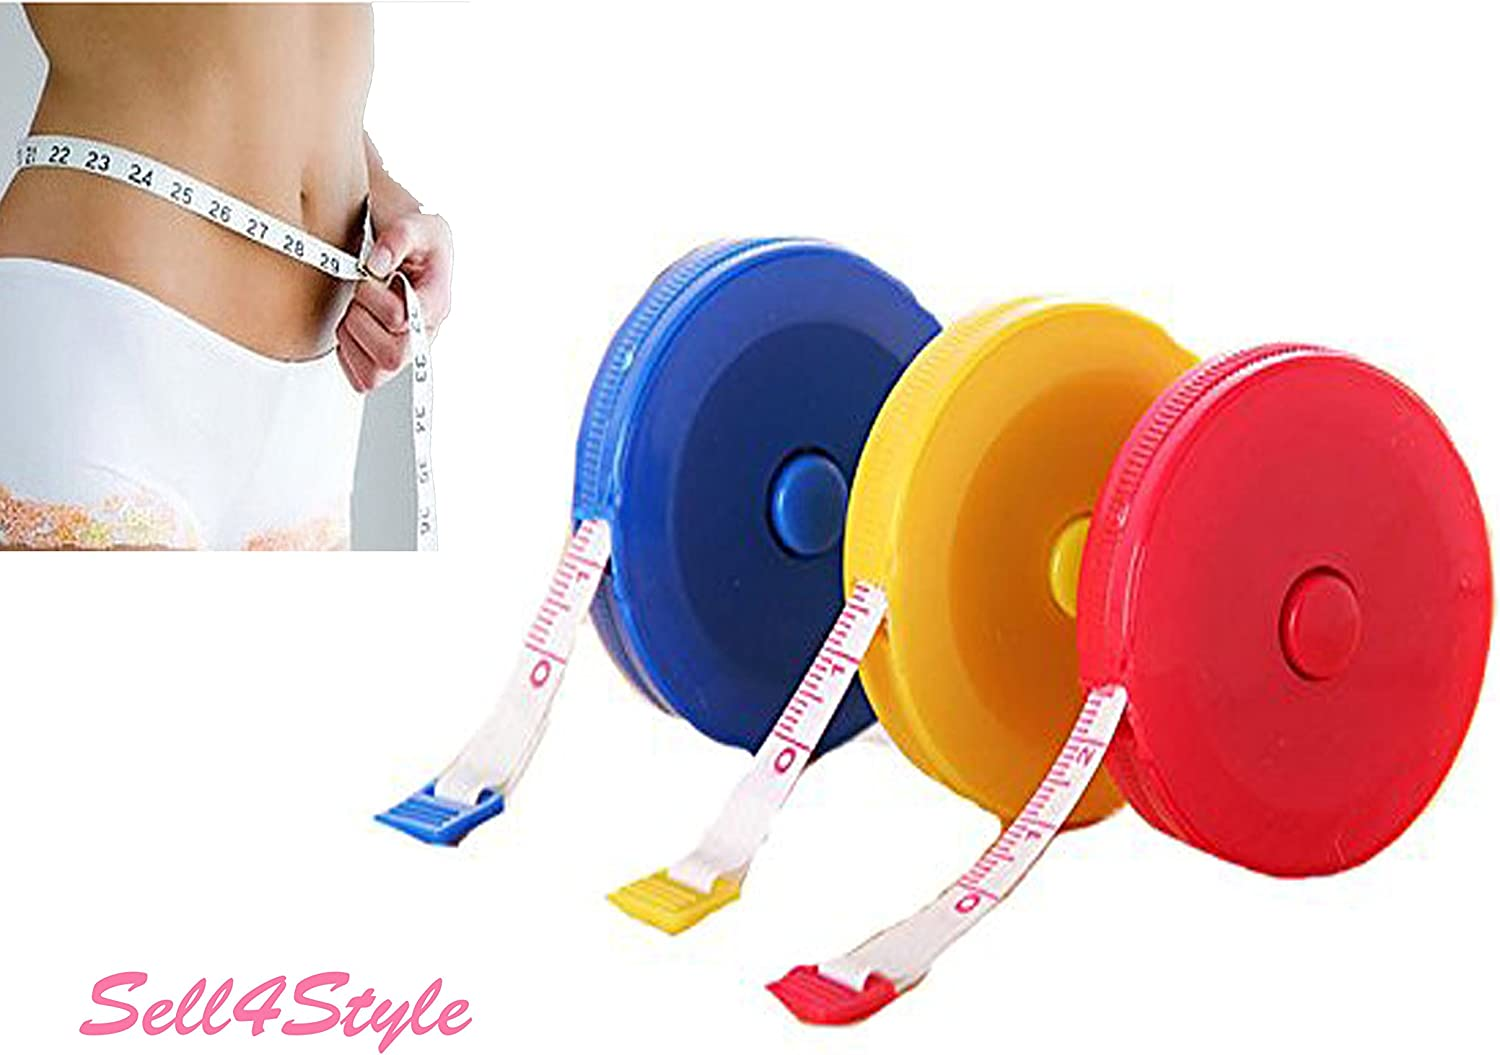 Sell4Style Body Tape Measure Automatic Retractable Measuring Tape Set 60 Inches 1.5 Meter Blue 2 Pack